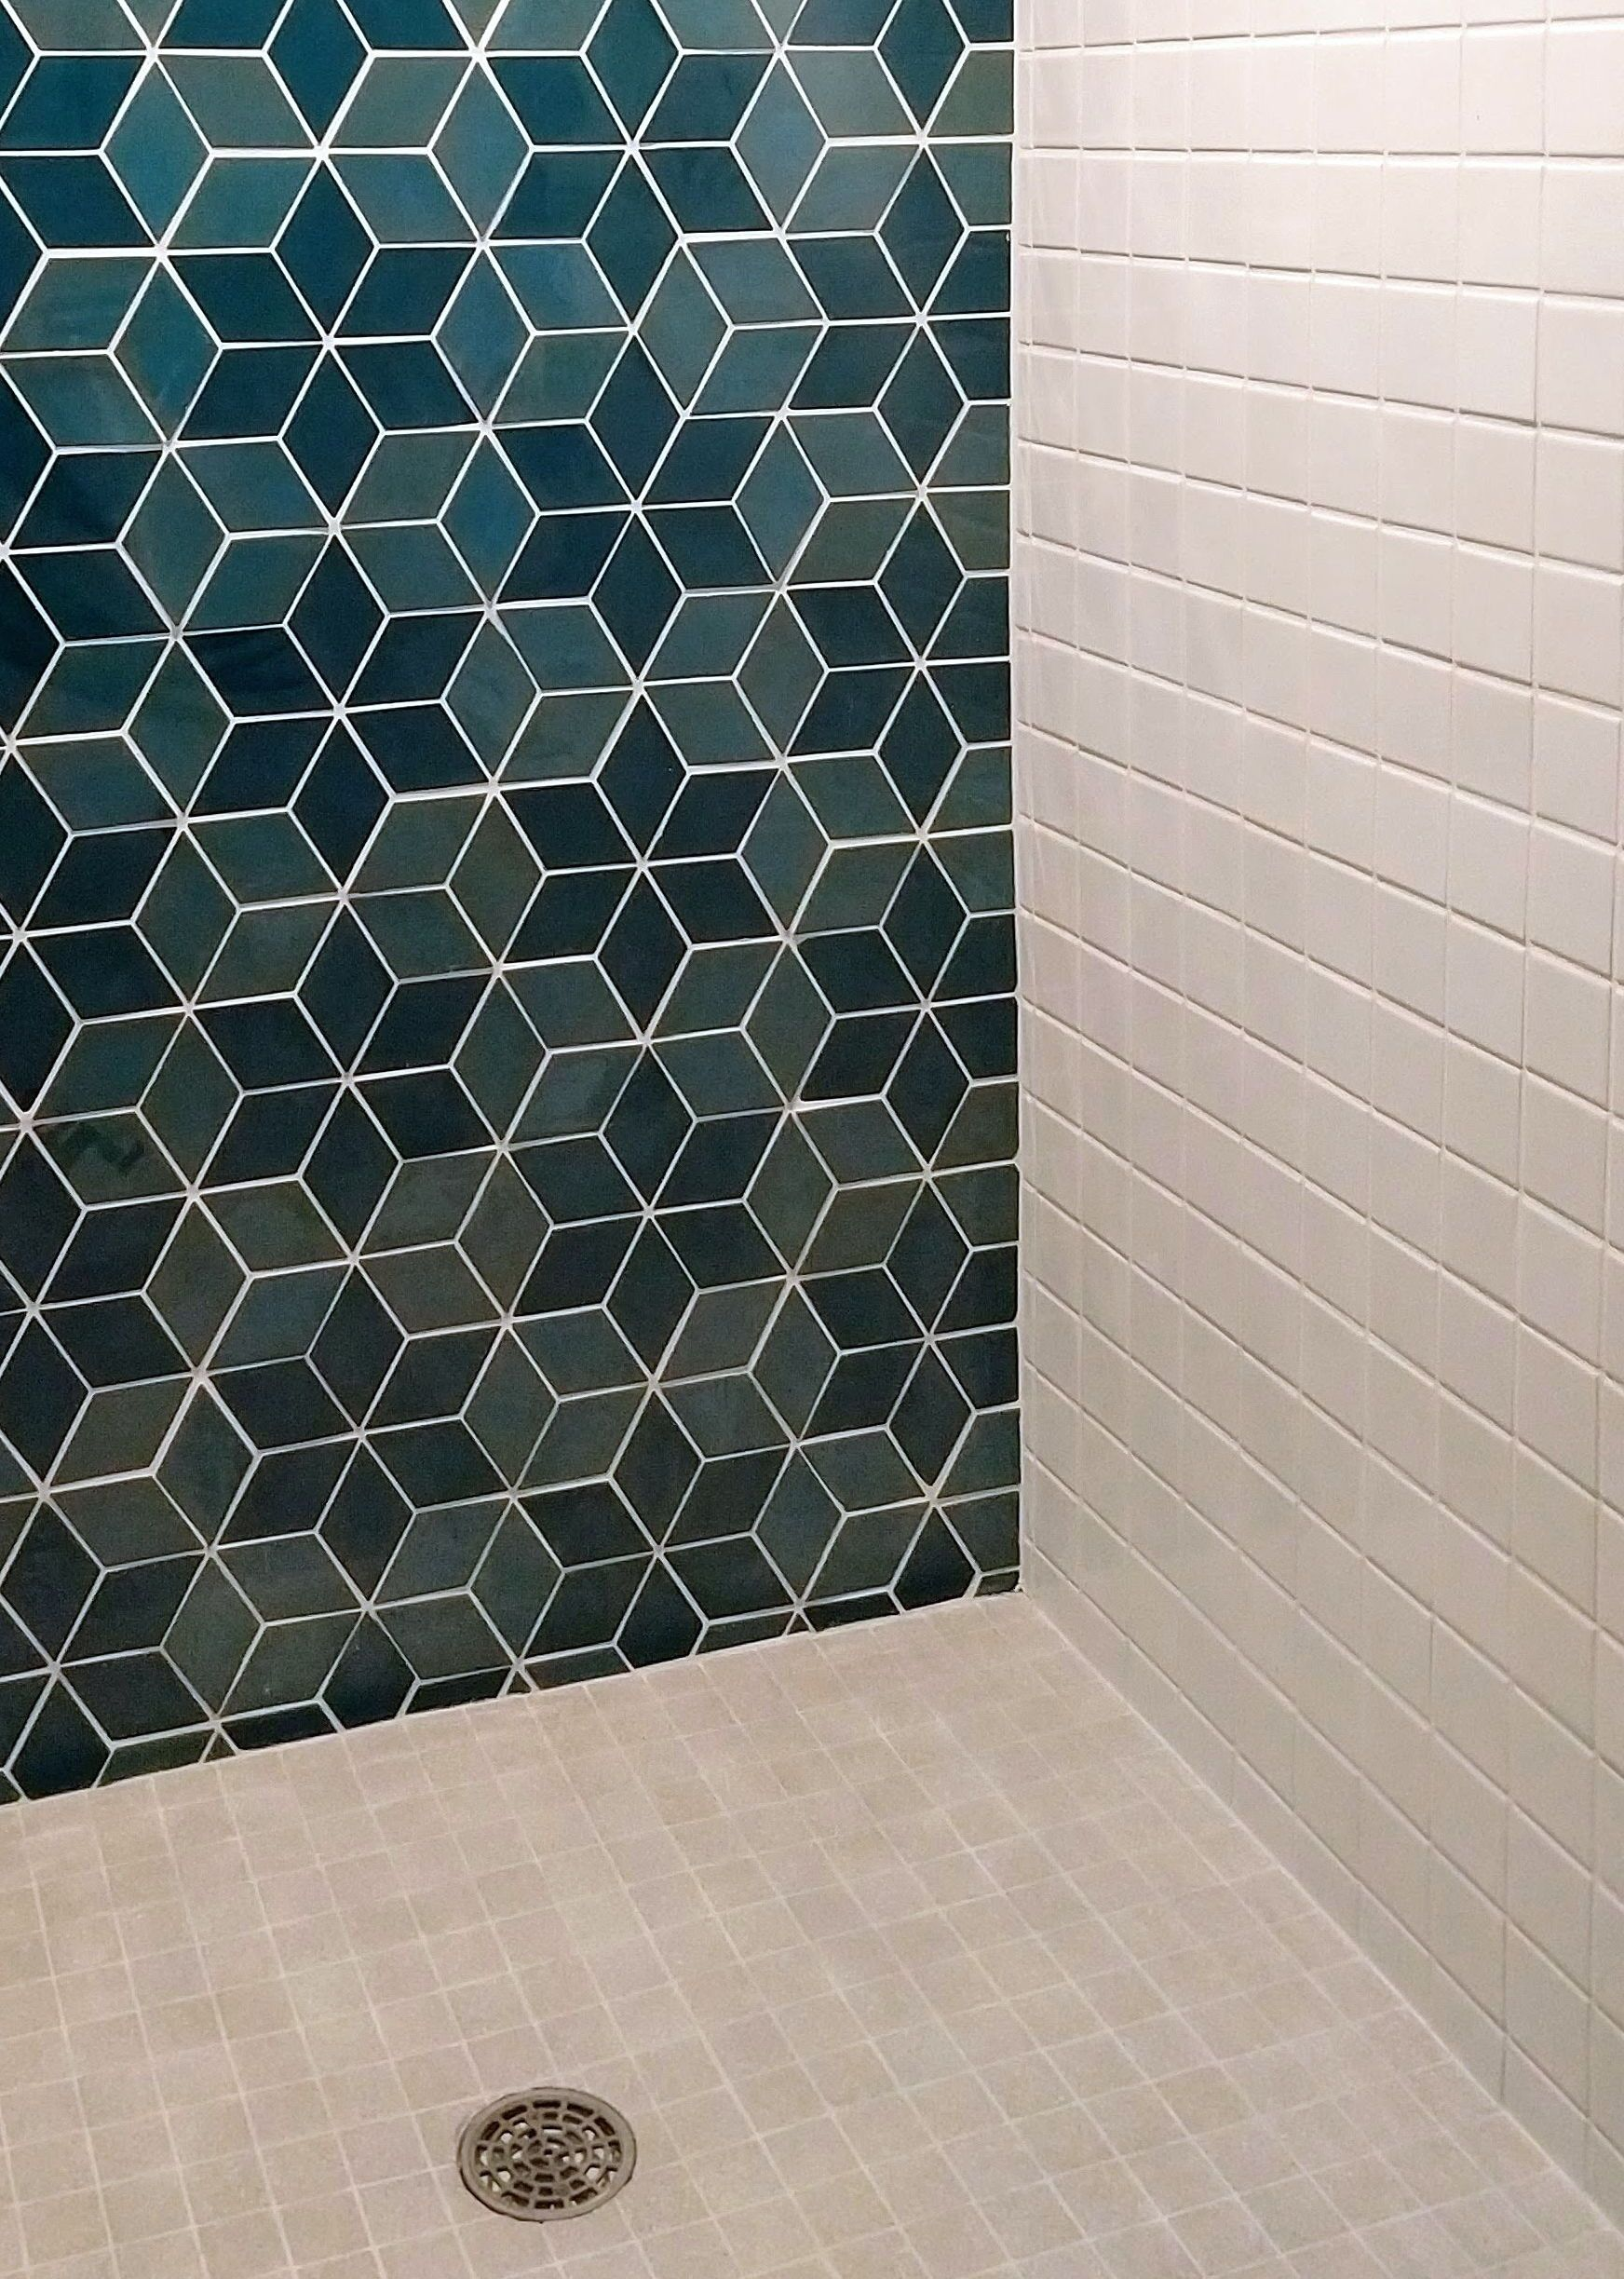 Diamond Shower Statement Wall Tile By Mercury Mosaics With